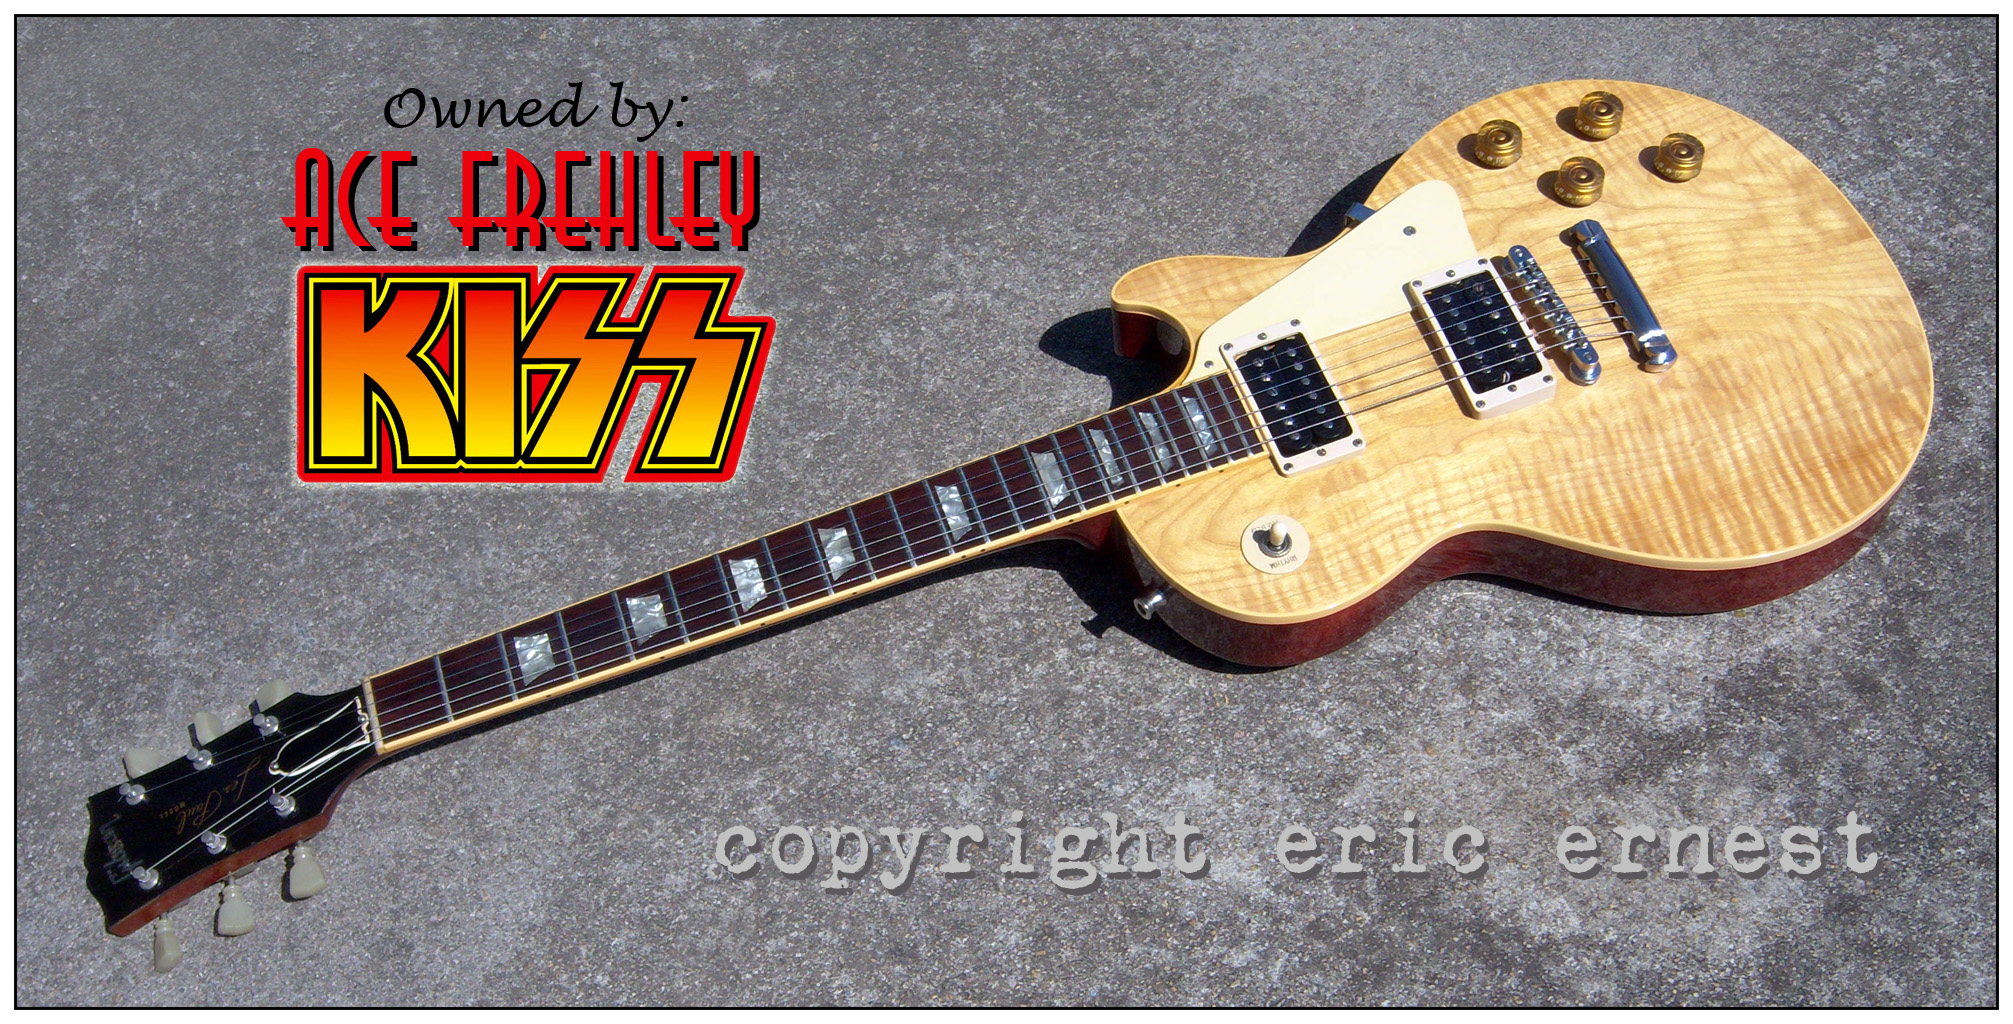 Ace Frehley of KISS | 1975 Gibson Les Paul Strings and Things guitar tour owned live collection